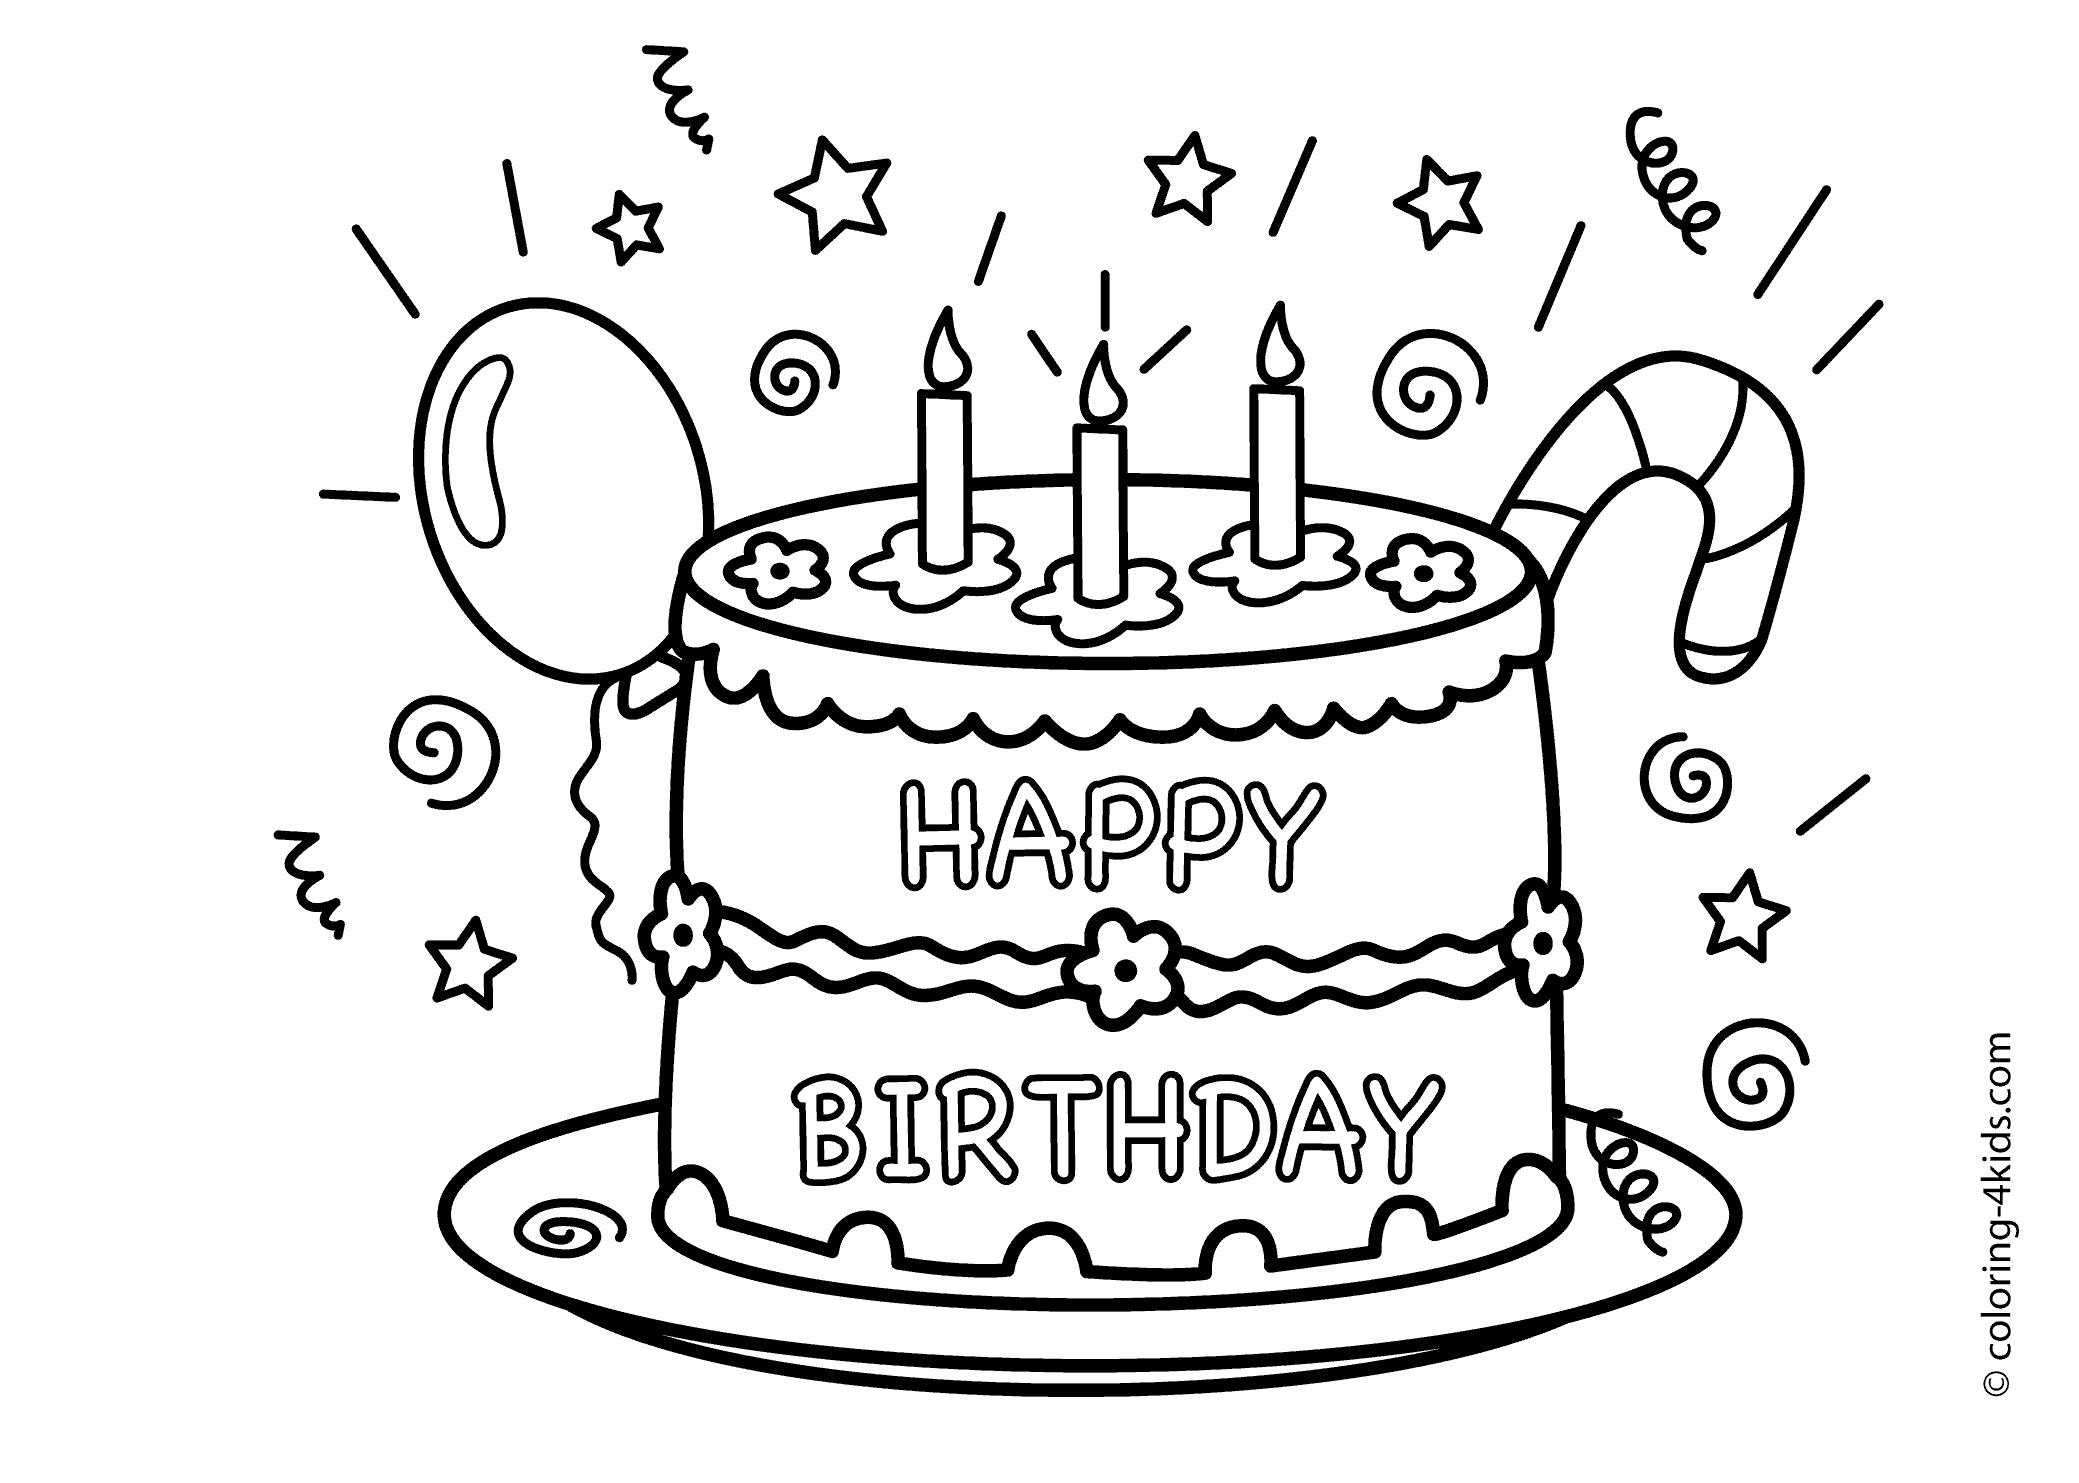 birthday cakes to colour in sheets ; cake-happy-birthday-party-coloring-pages--celebration-coloring